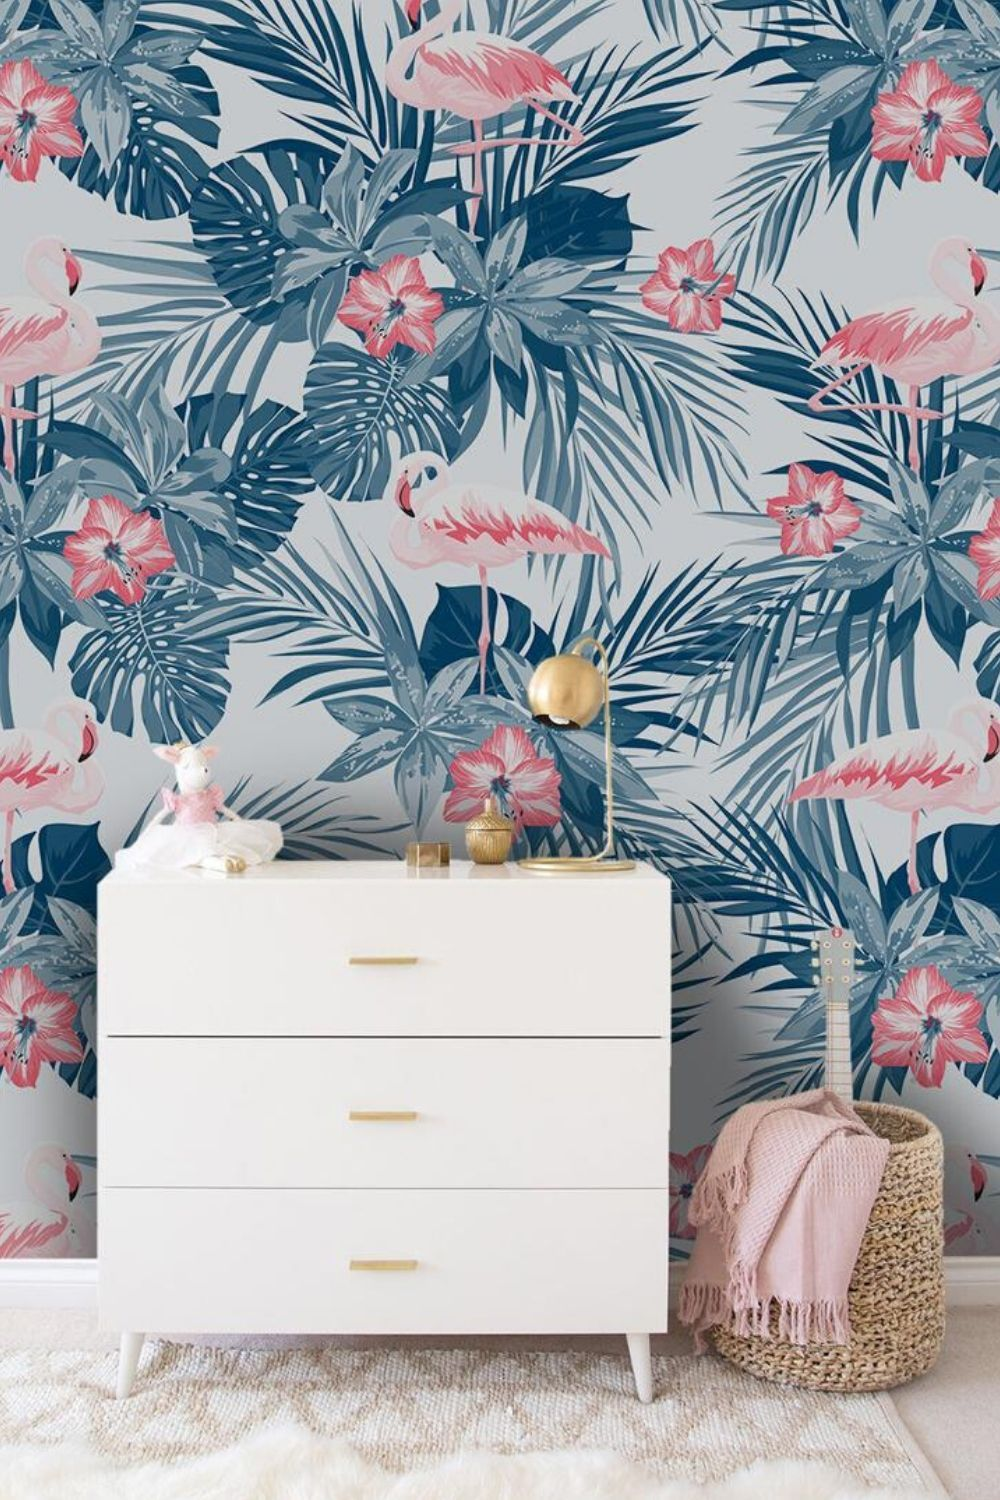 Indigo Tropical Flamingo Birds Removable Wallpaper Pink And Etsy In 2021 Removable Wallpaper How To Install Wallpaper Photo Mural